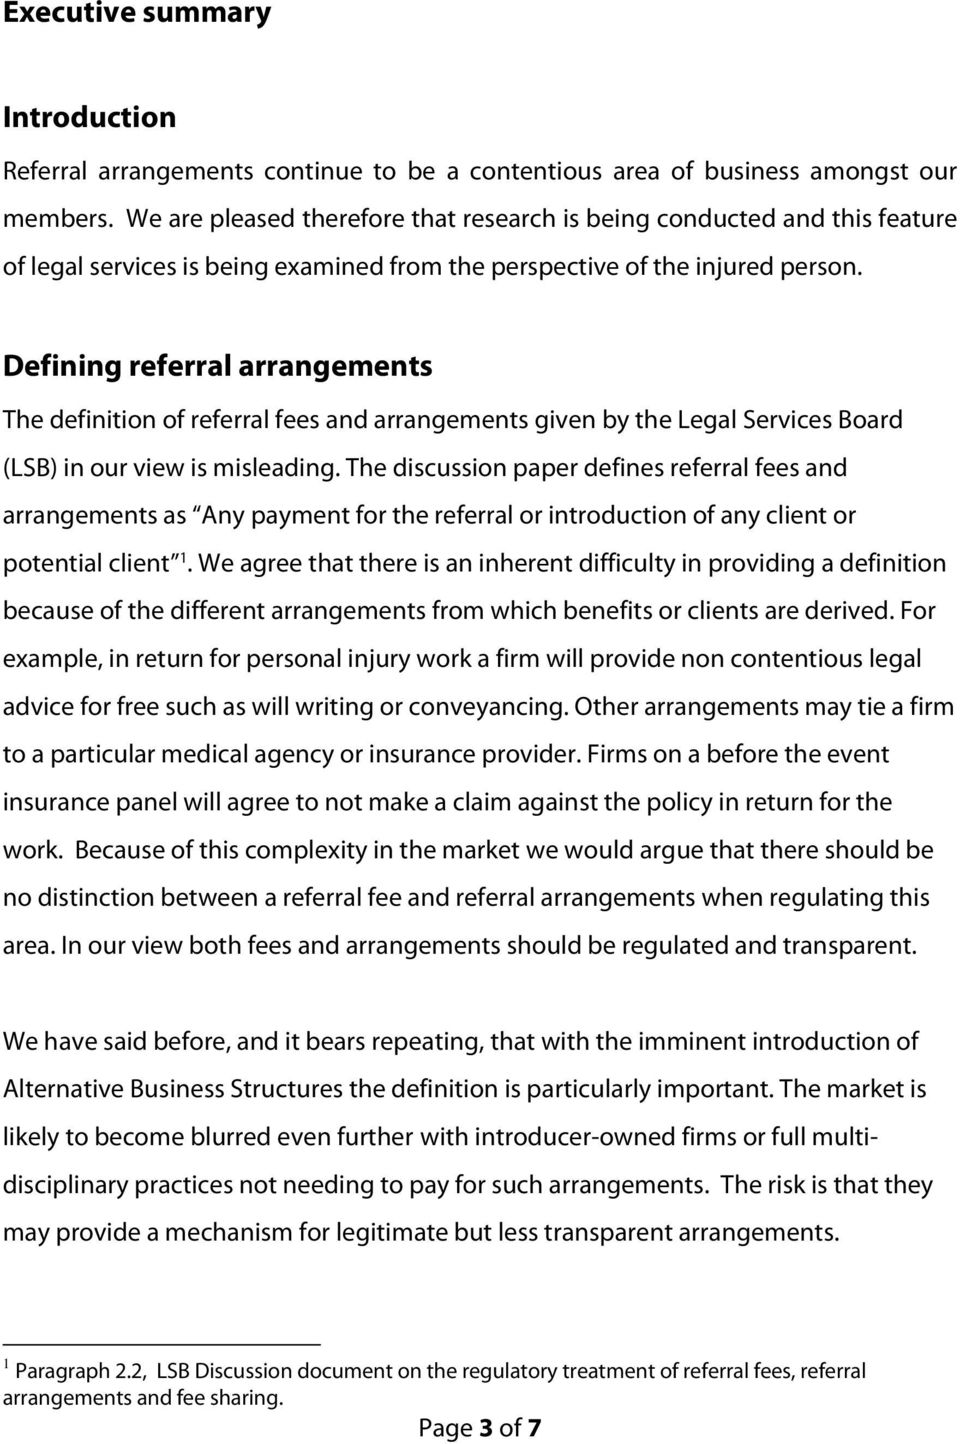 Defining referral arrangements The definition of referral fees and arrangements given by the Legal Services Board (LSB) in our view is misleading.